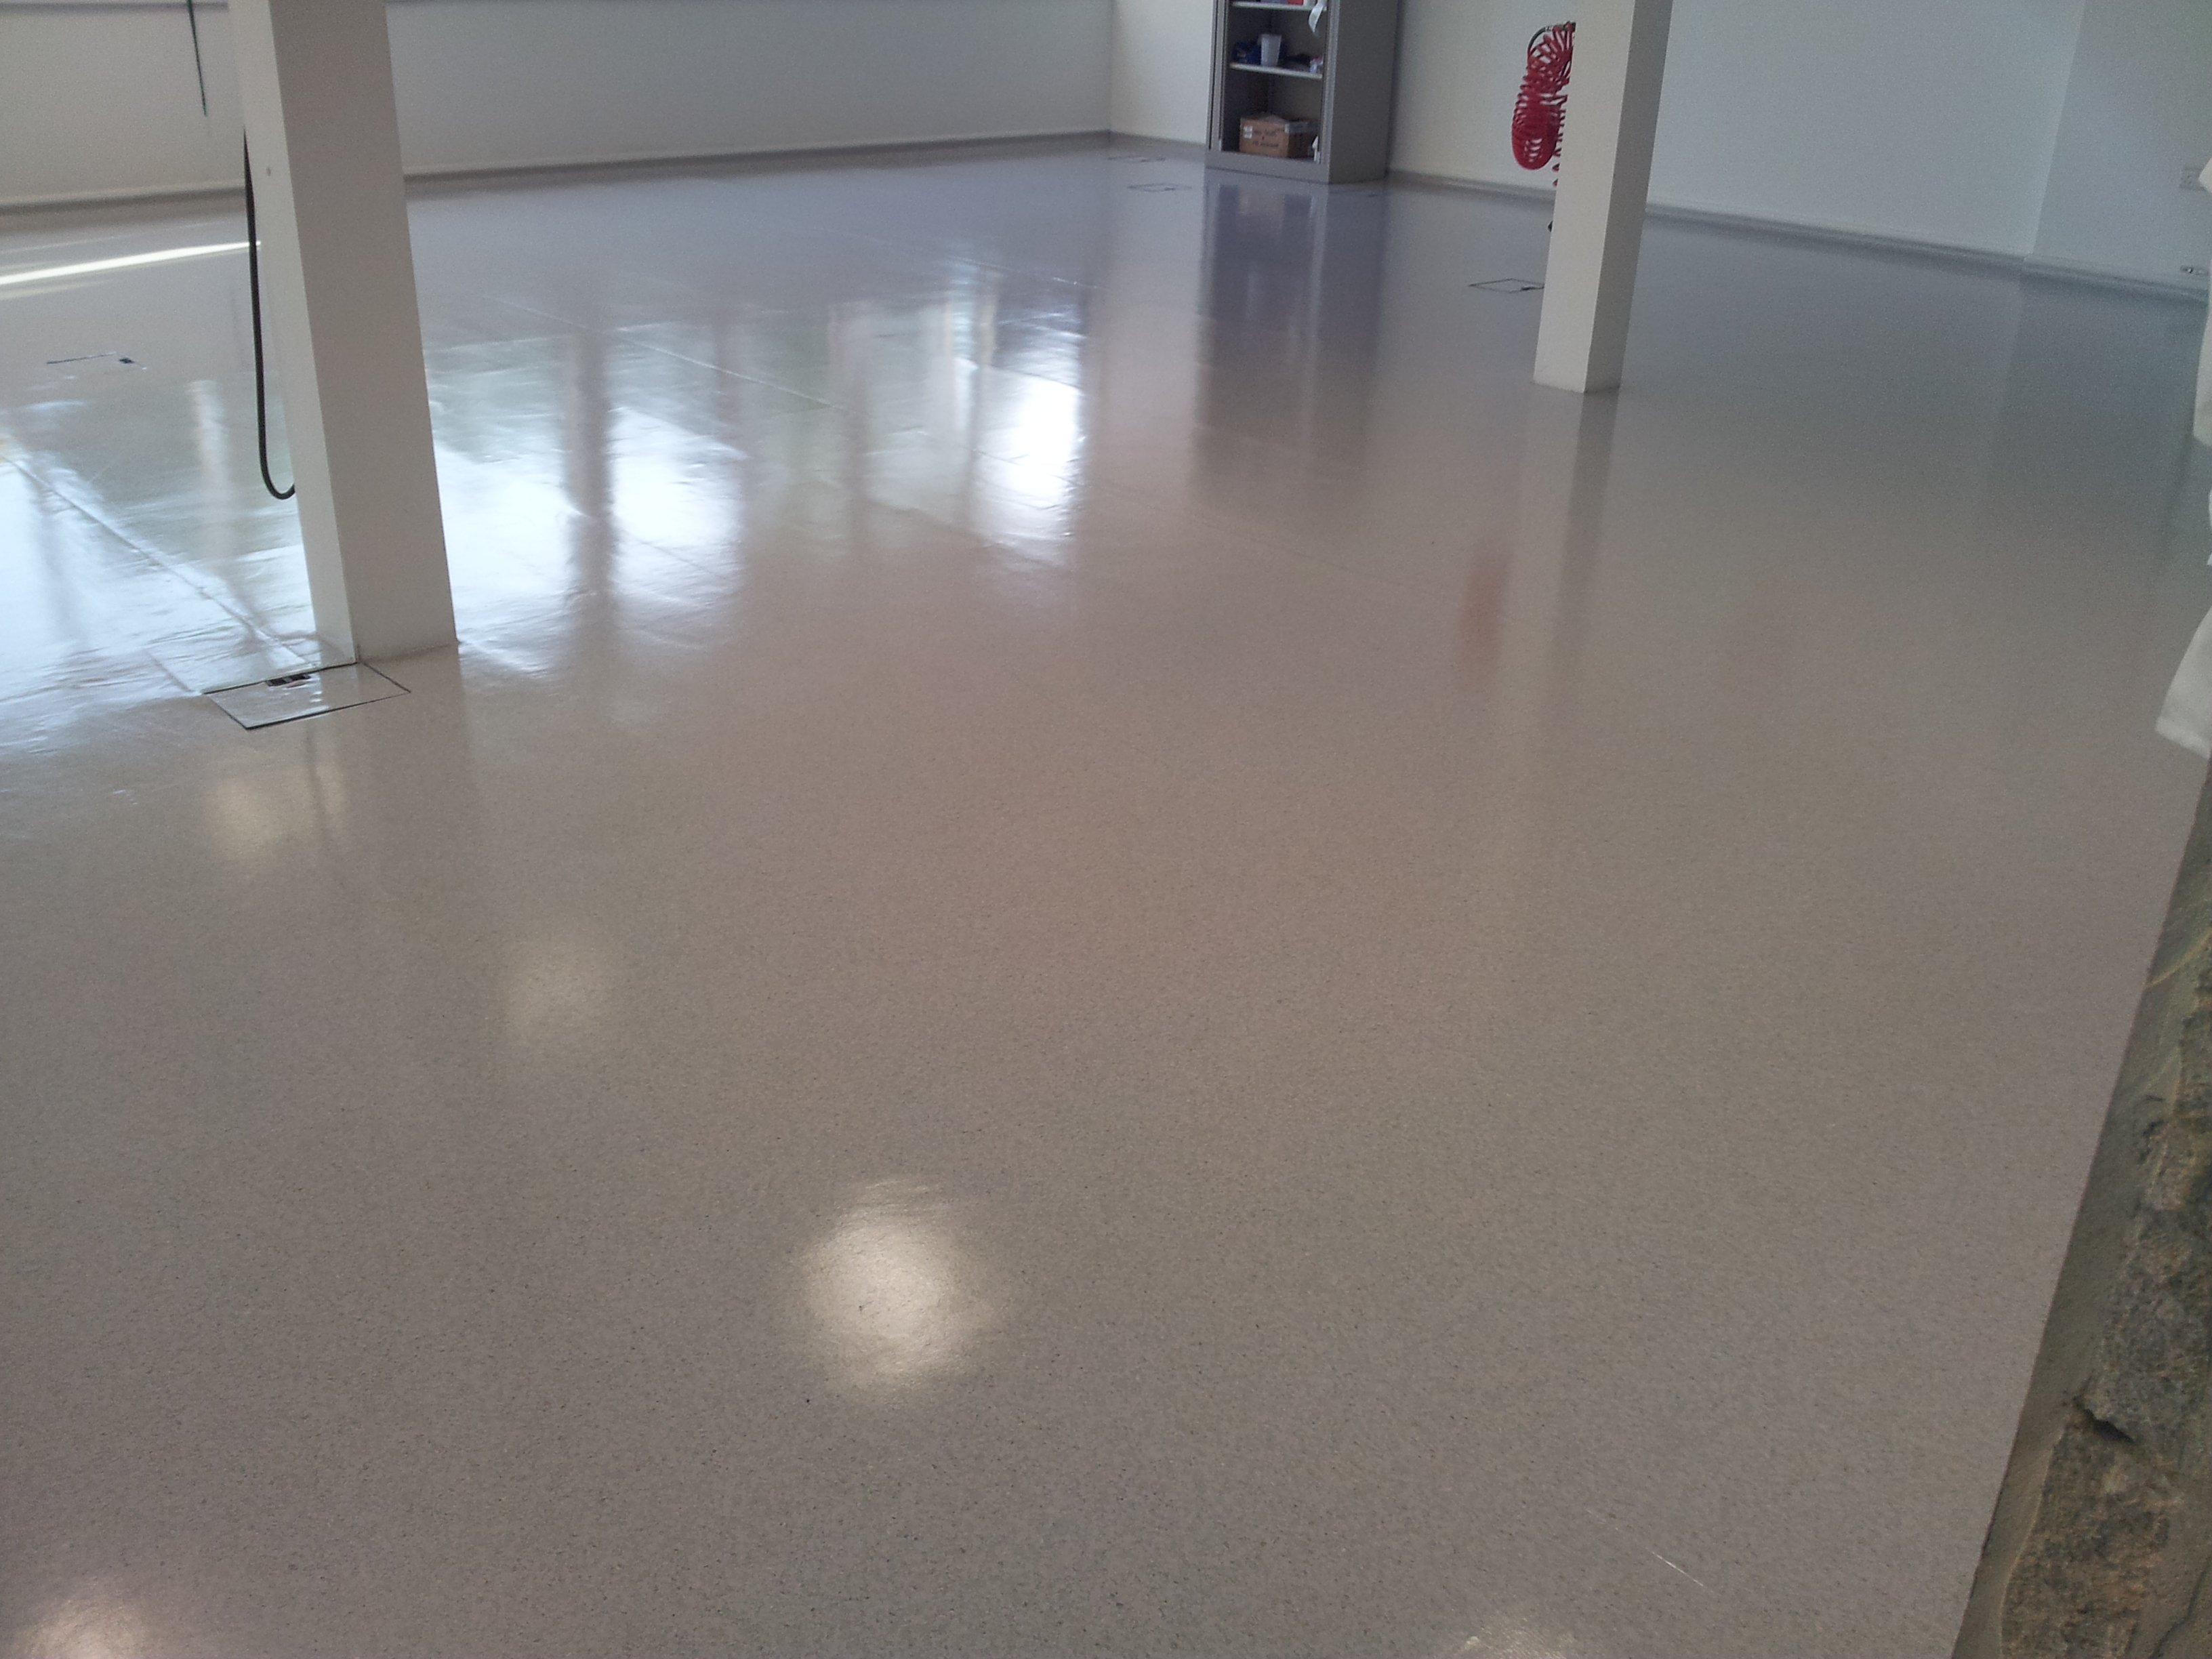 Vinyl floors cleaning vinyl floor cleaning decoration in for Hardwood floors dull after cleaning